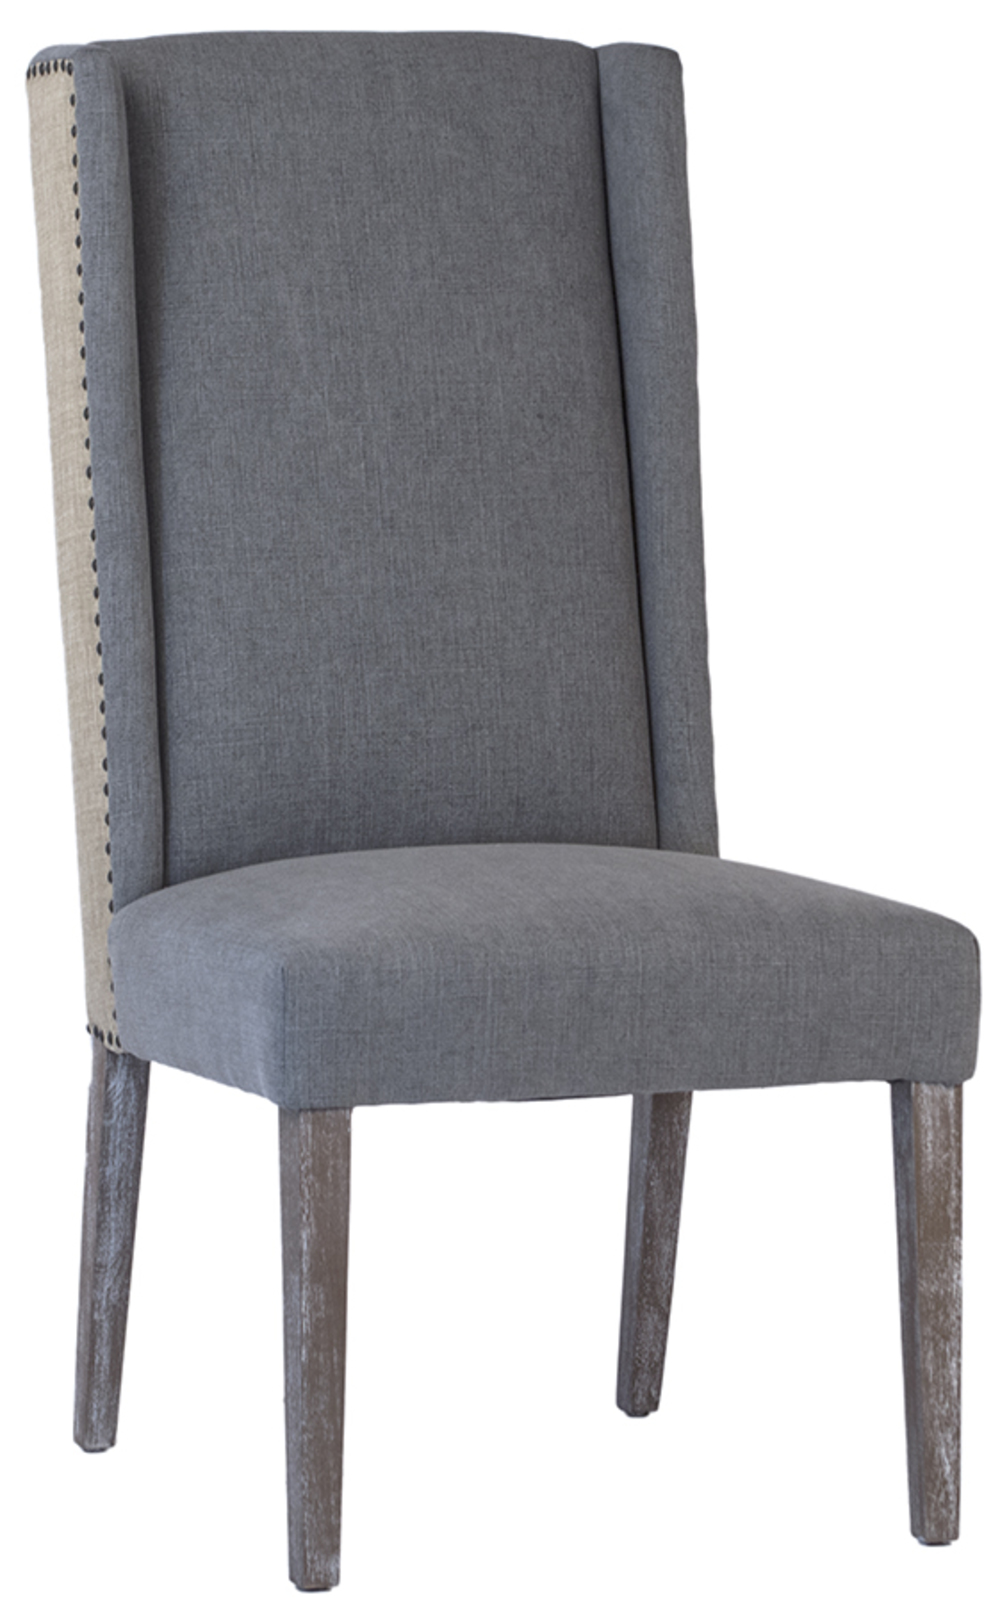 Dovetail Furniture - Ardee Dining Chair